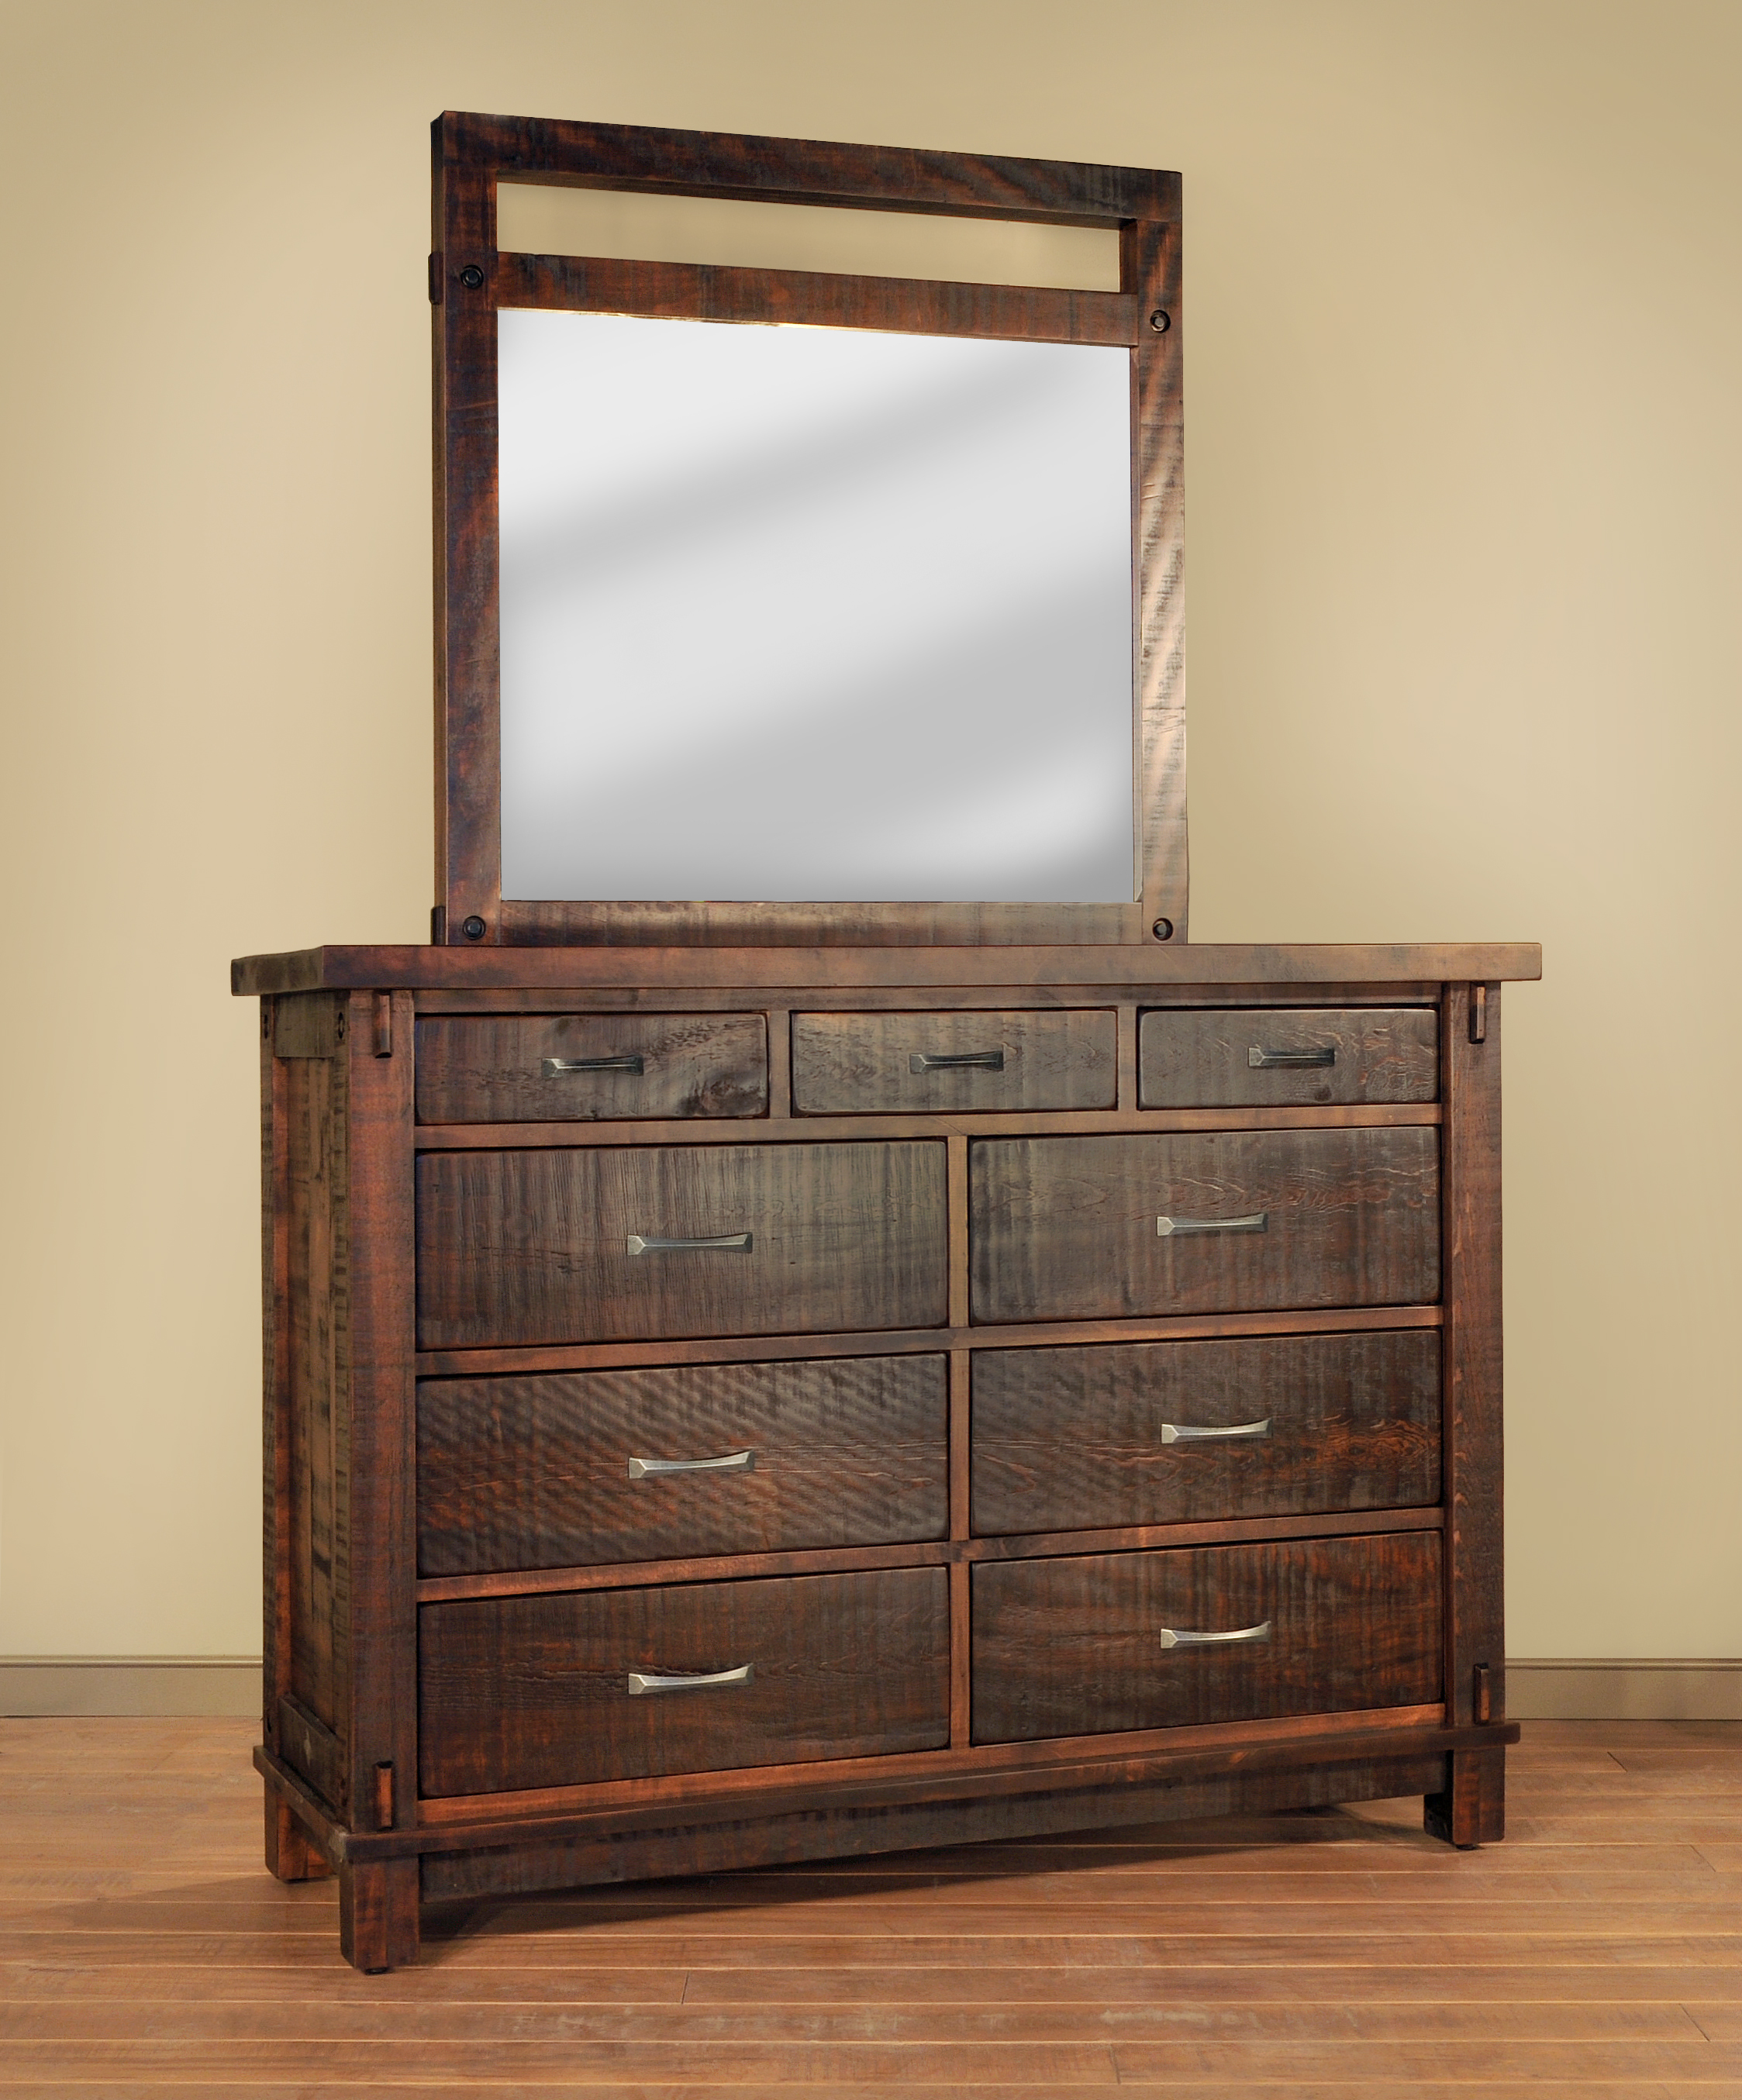 Timber dresser with mirror